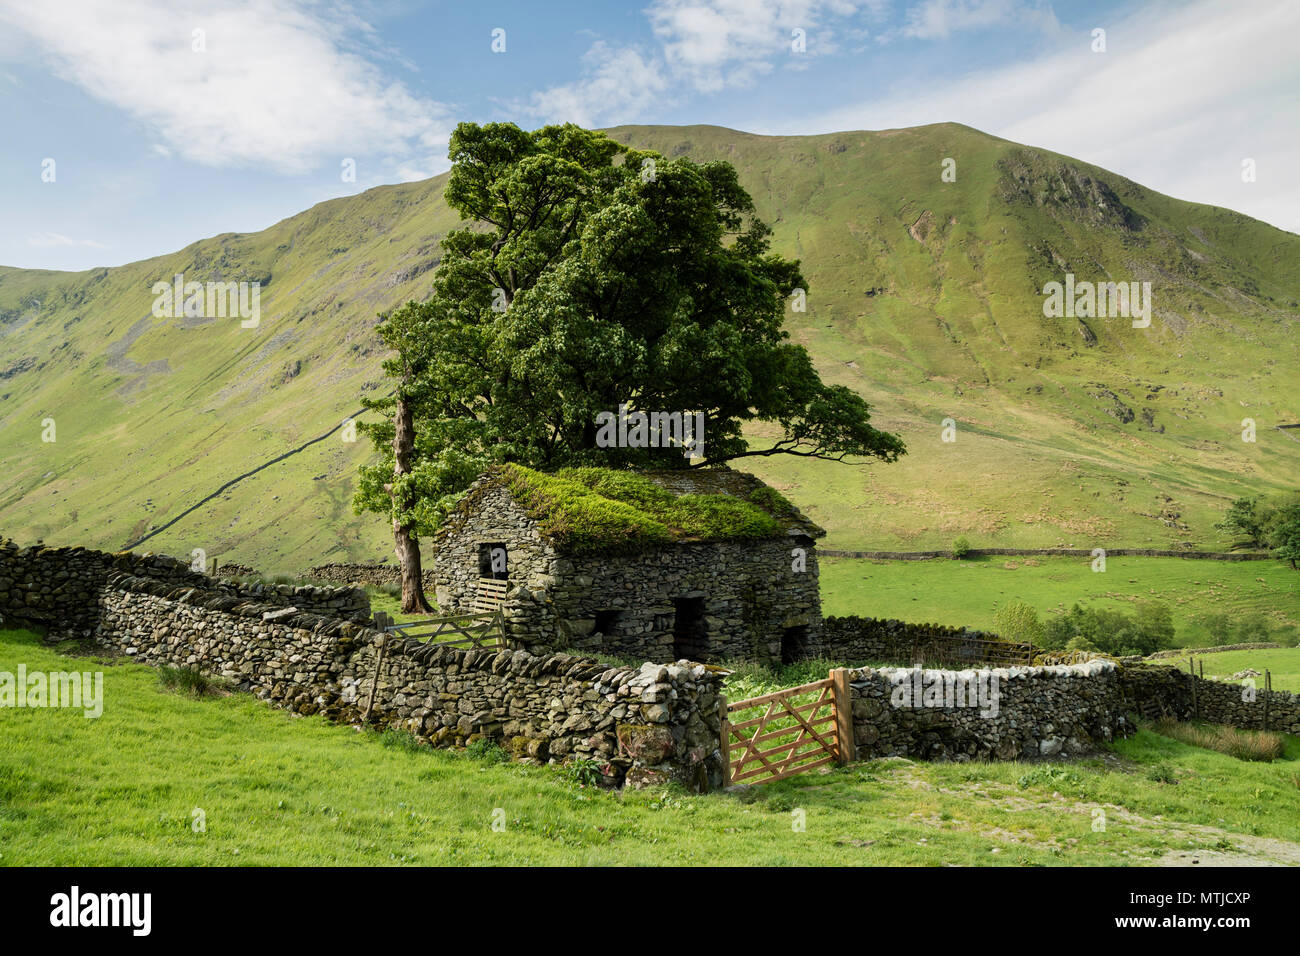 Traditional Old Stone Barn with the Mountain of Hartsop Dodd Behind, Hartsop, Lake District, Cumbria, UK - Stock Image